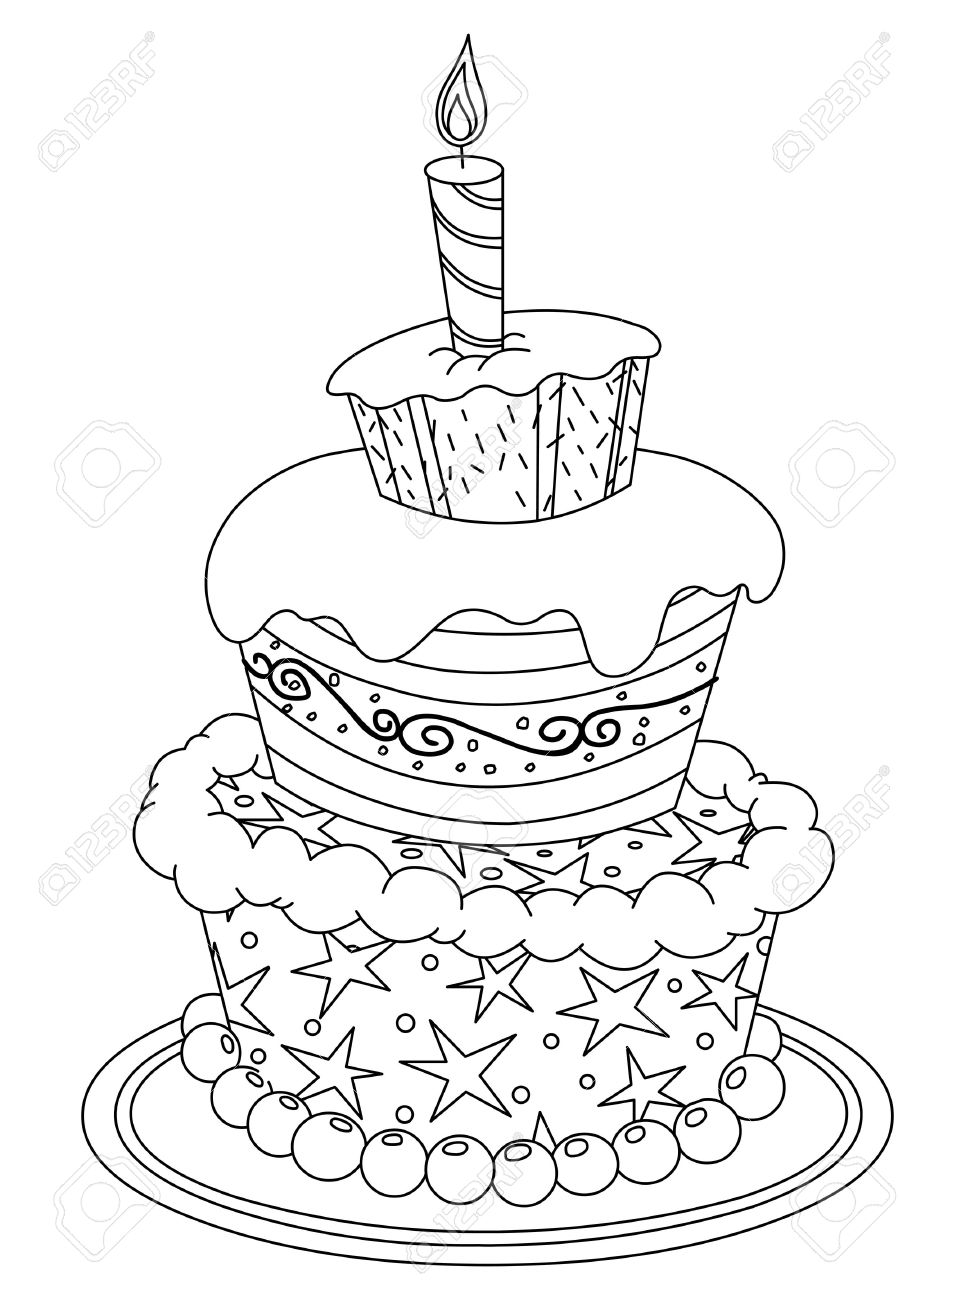 outlined birthday cake vector illustration coloring page royalty